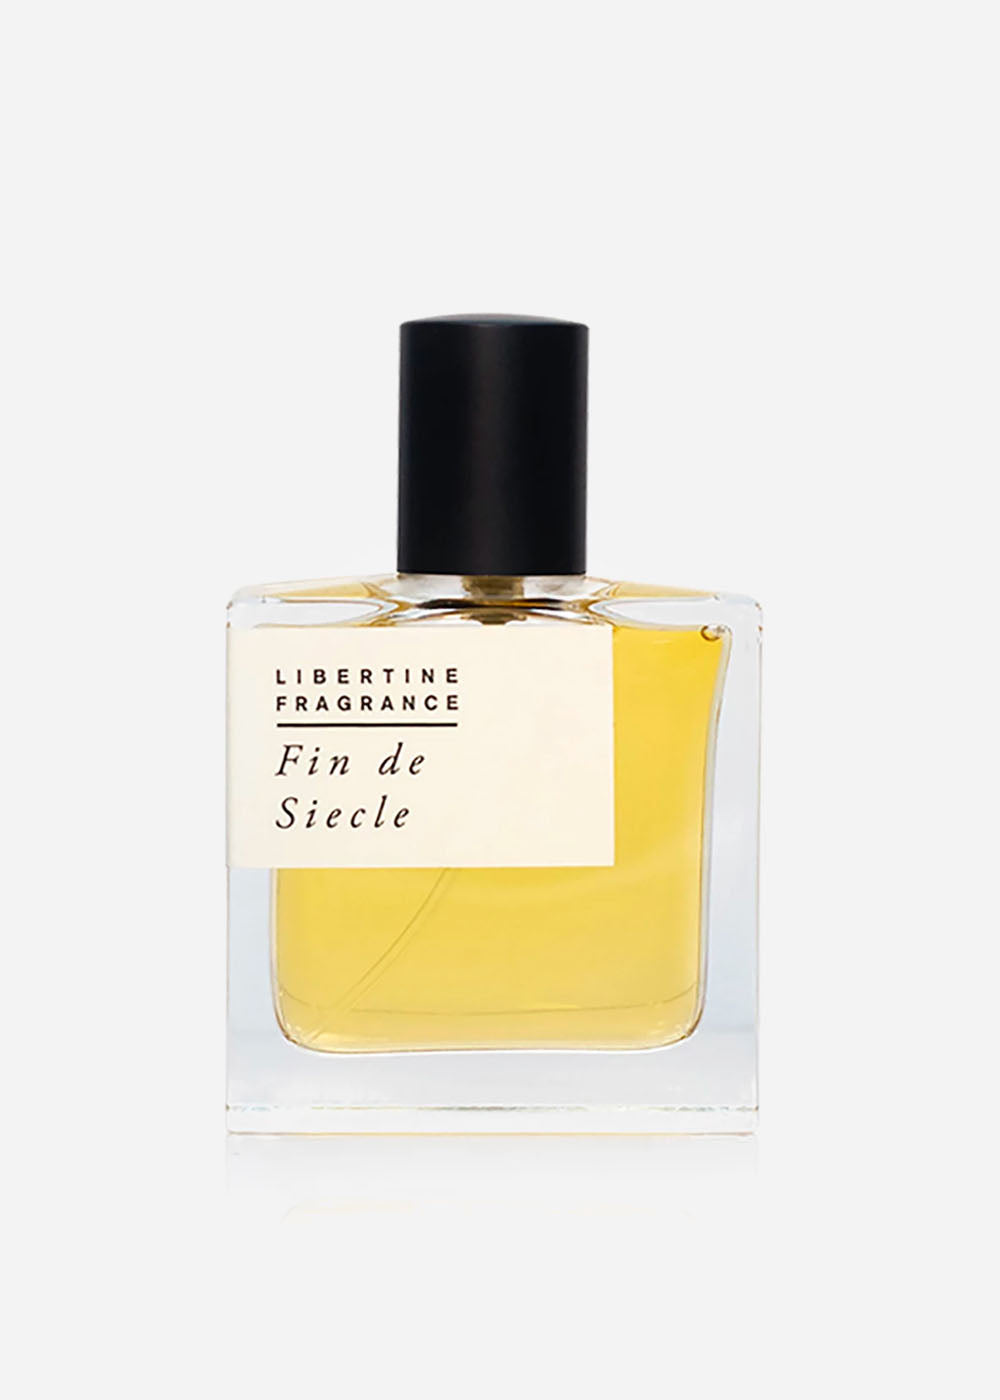 Libertine Fragrance Fin de Siecle Eau De Parfum — Shop sustainable fashion and slow fashion at New Classics Studios